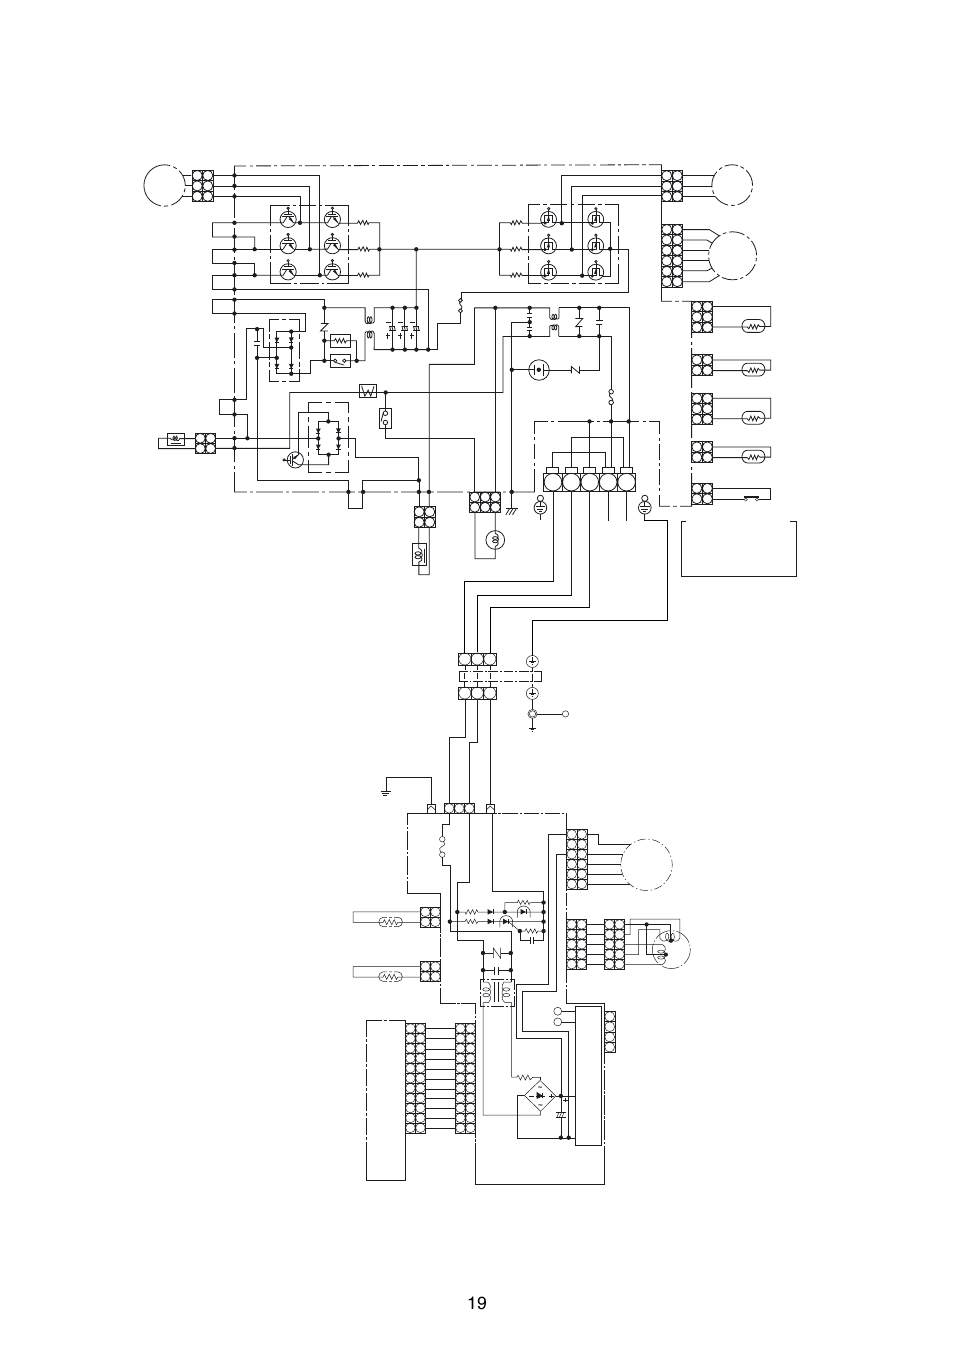 Wiring diagram, Fm pmv, Power supply circuit main pc board